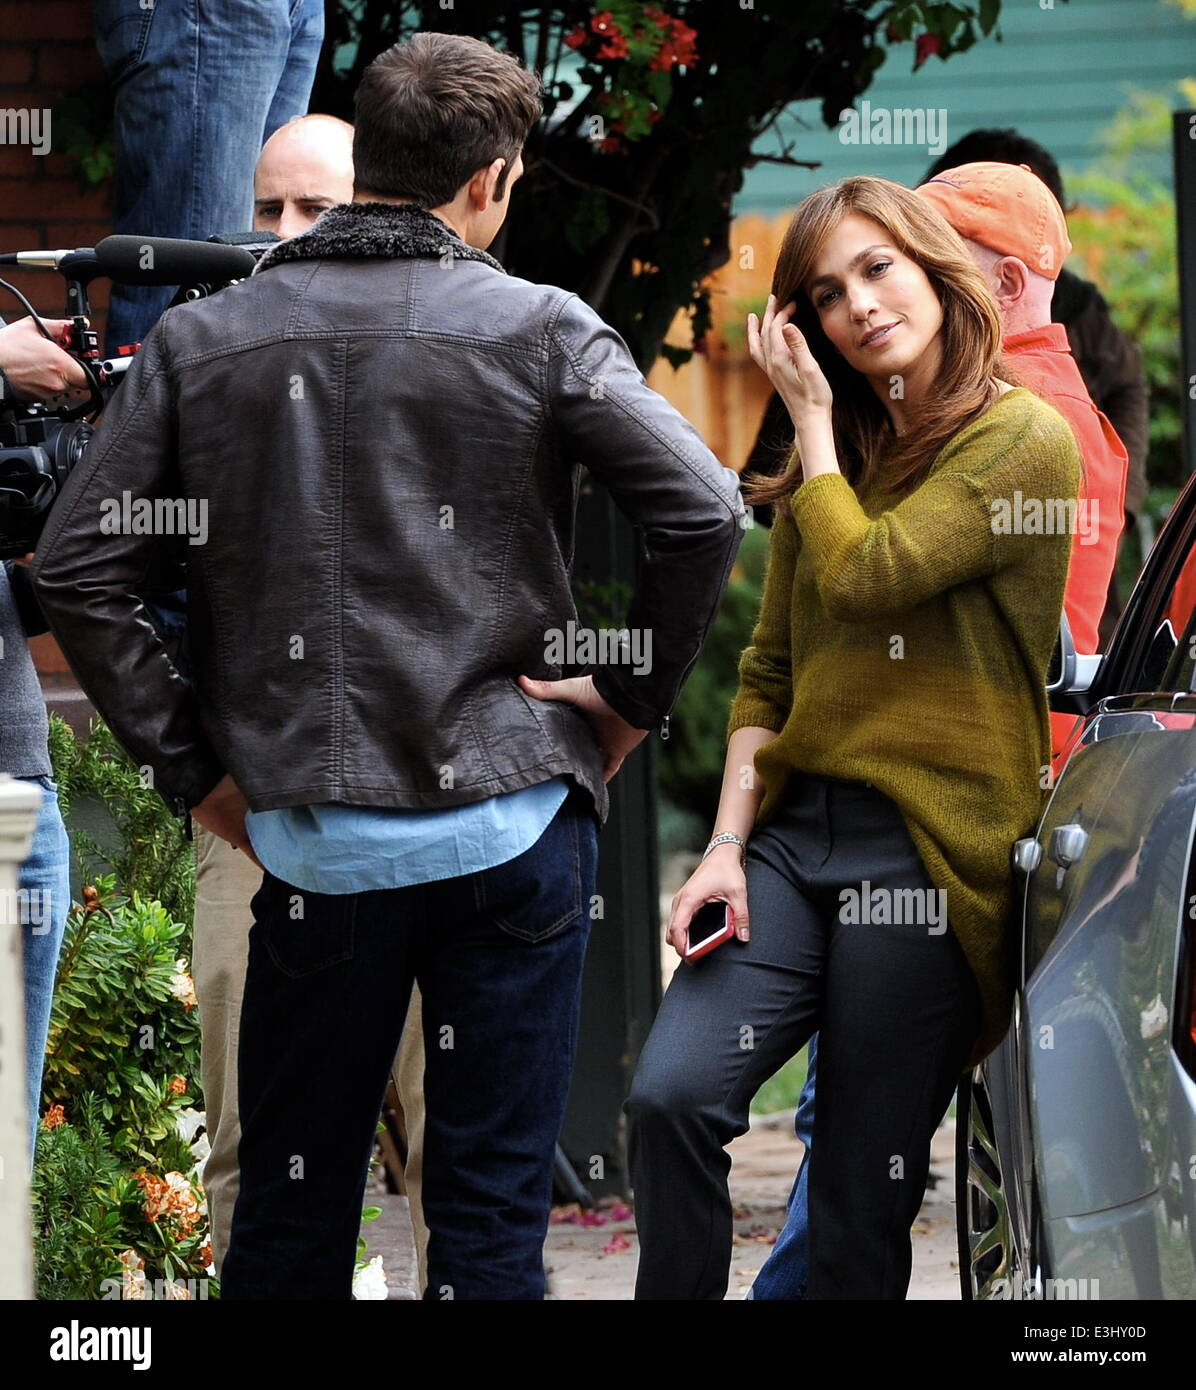 Jennifer Lopez filming scenes for her new movie u0027The Boy Next Dooru0027 with co stars John Corbett and Ryan Guzman in Hollywood Featuring Jennifer LopezRyan ...  sc 1 st  Alamy & Jennifer Lopez filming scenes for her new movie u0027The Boy Next Door ...